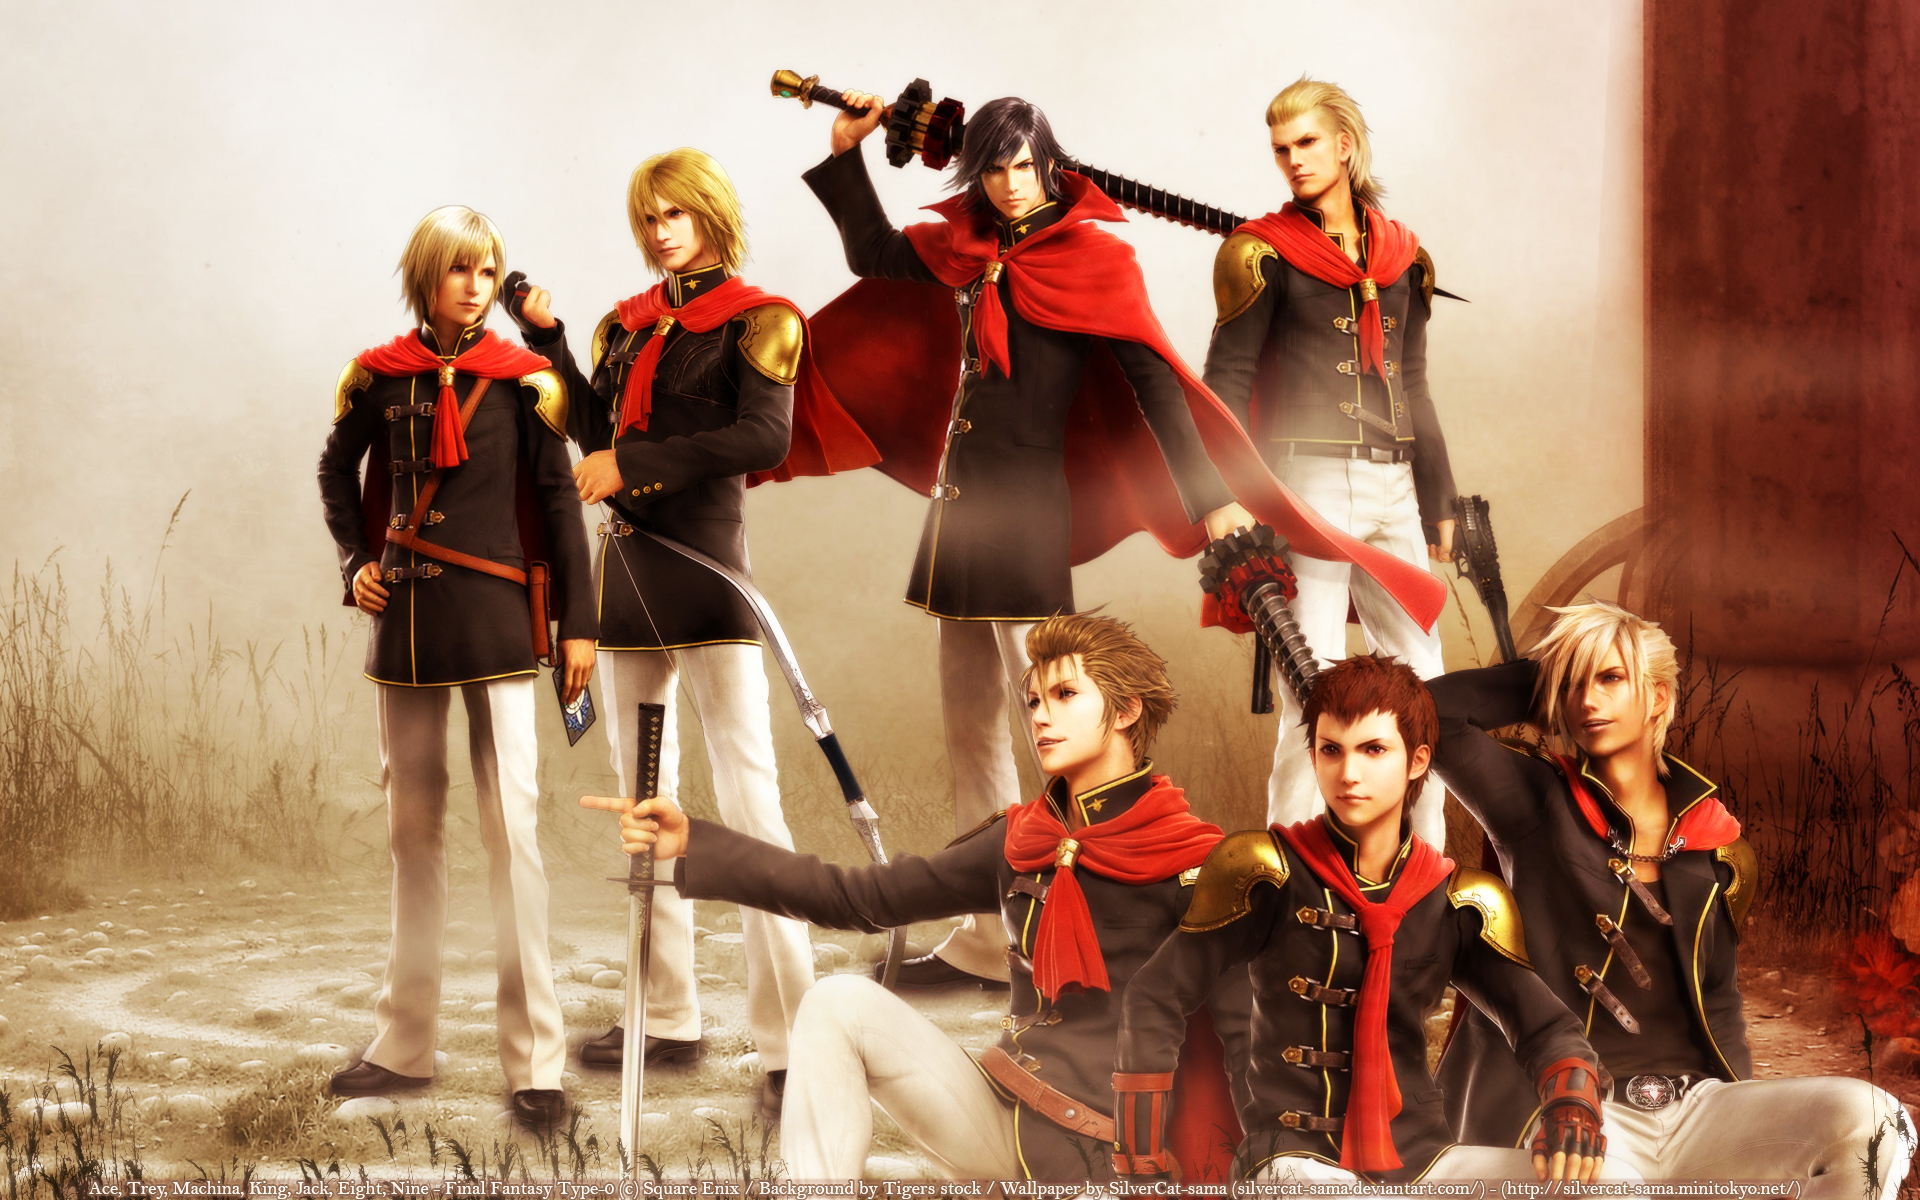 Final Fantasy Type 0 Wallpaper And Scan Gallery Minitokyo